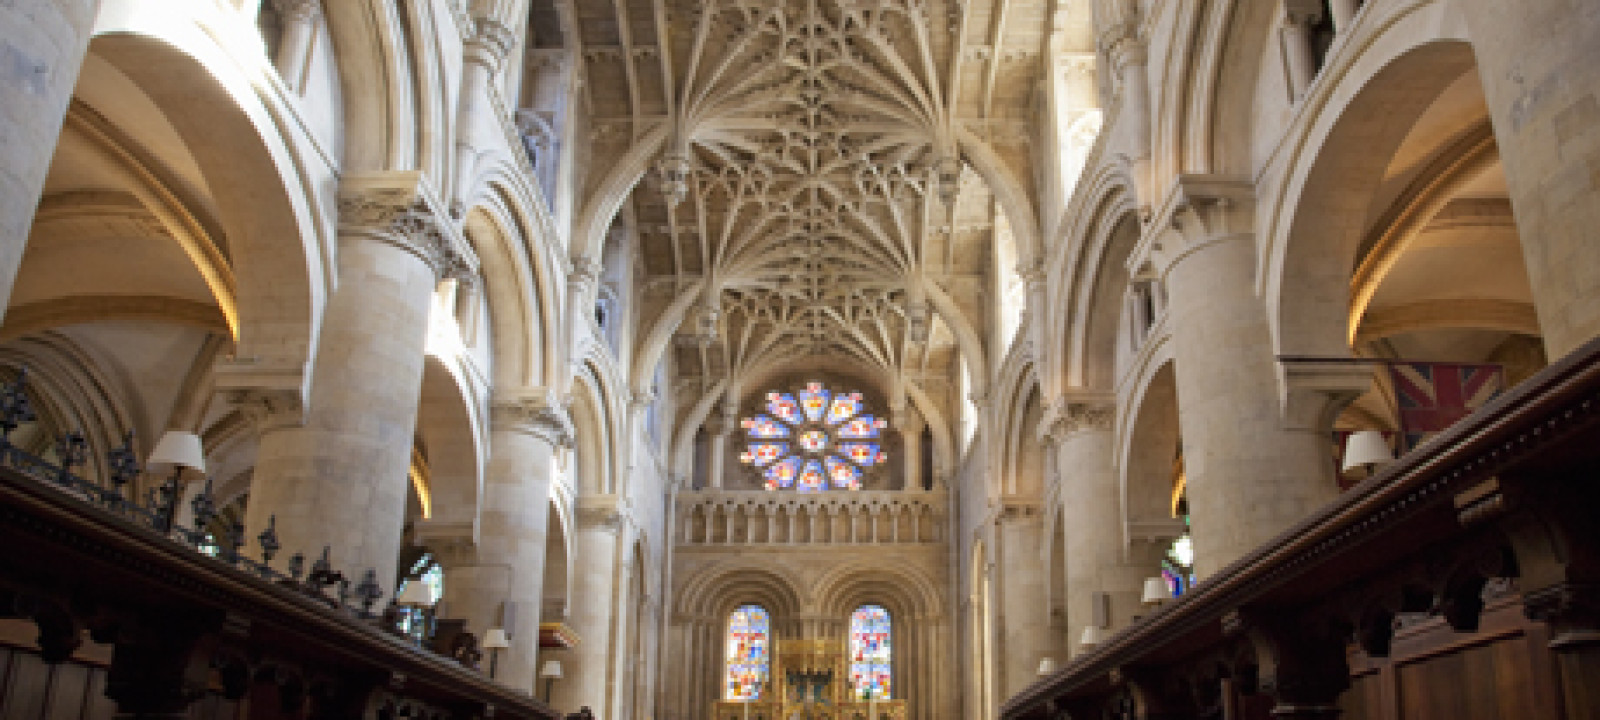 Christ Church Cathedral interior, Oxford University, Oxford, Oxf